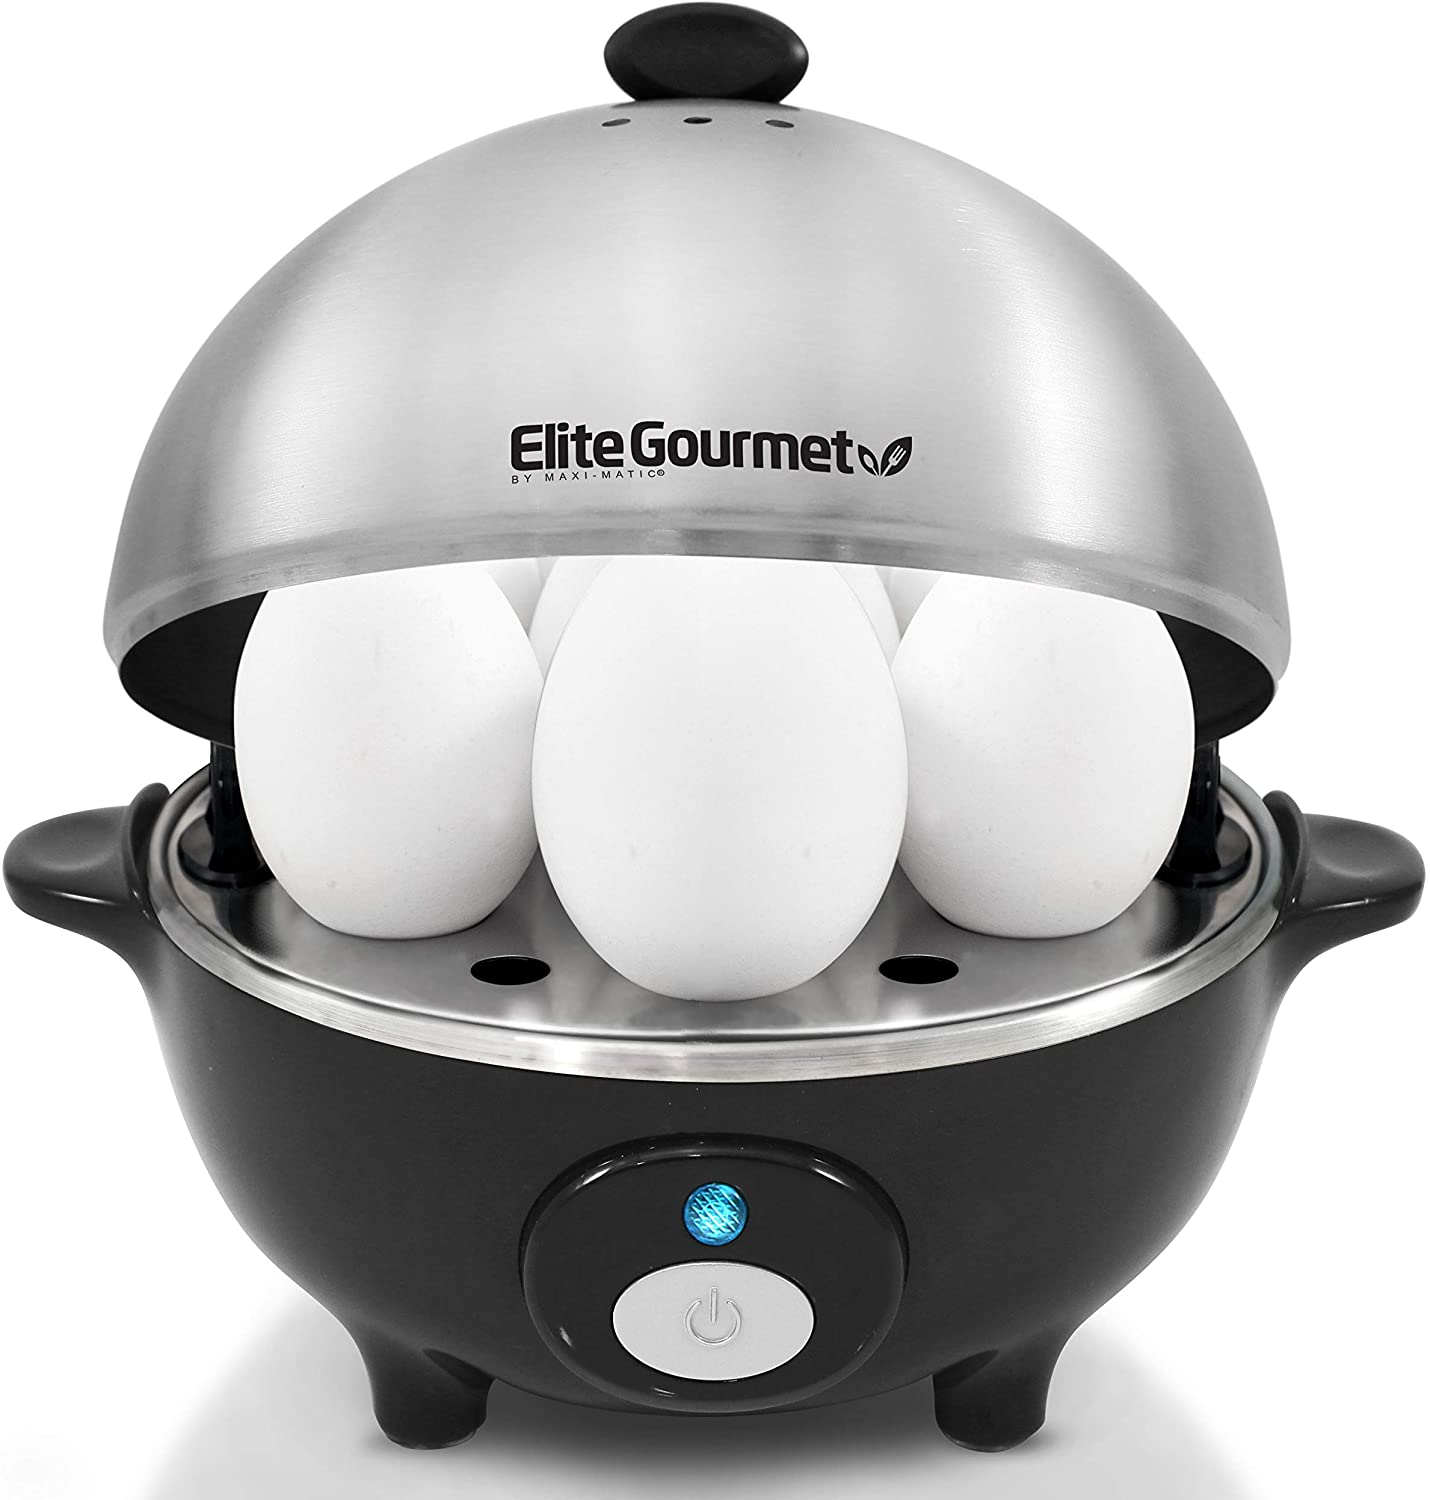 Elite Cuisine EGC-508 Egg Poacher, Omelet & Soft, Medium, Hard-Boiled Egg Cooker with Auto-Off, Buzzer and Stainless Steel Tray, 7 Egg Capacity, Black